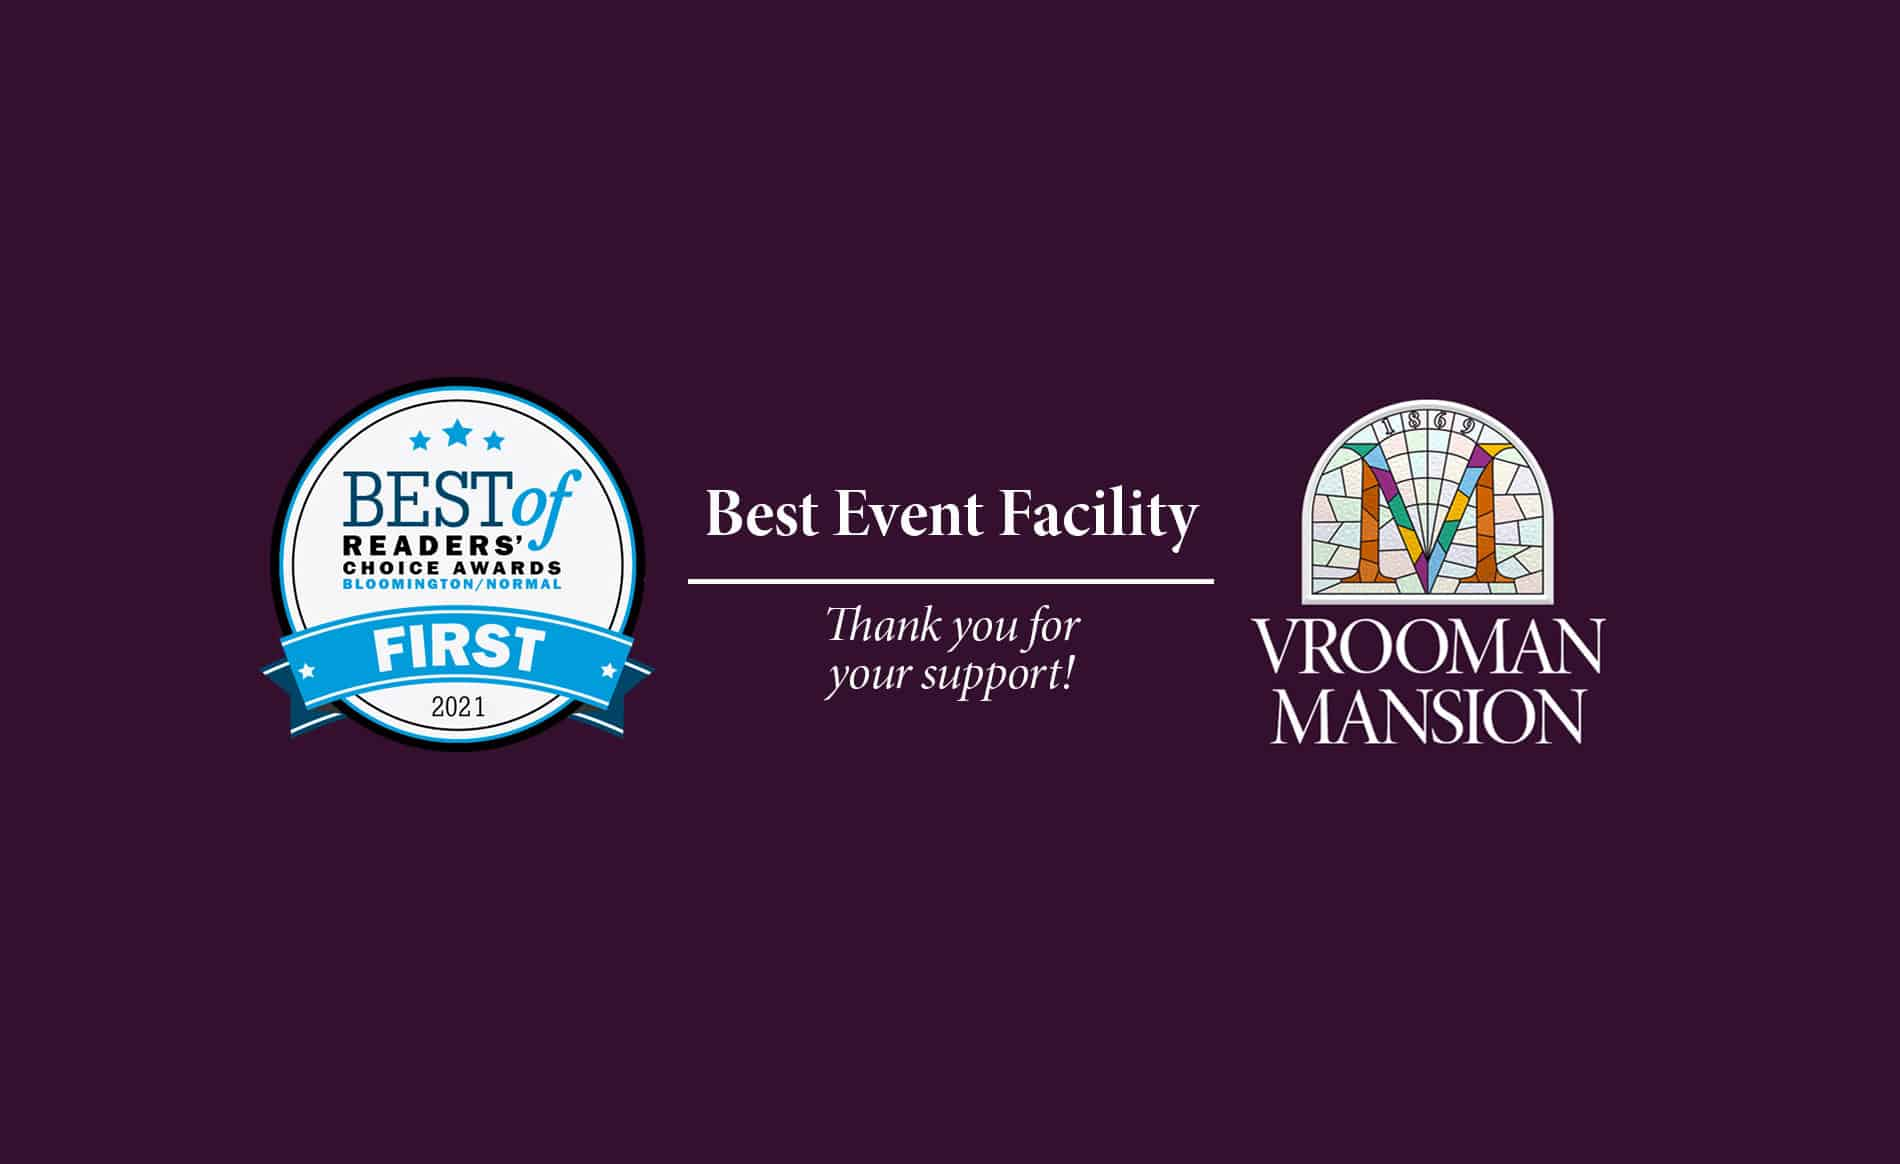 Award Logo in Blue and White for the Best Event Facility in Bloomington Illinois